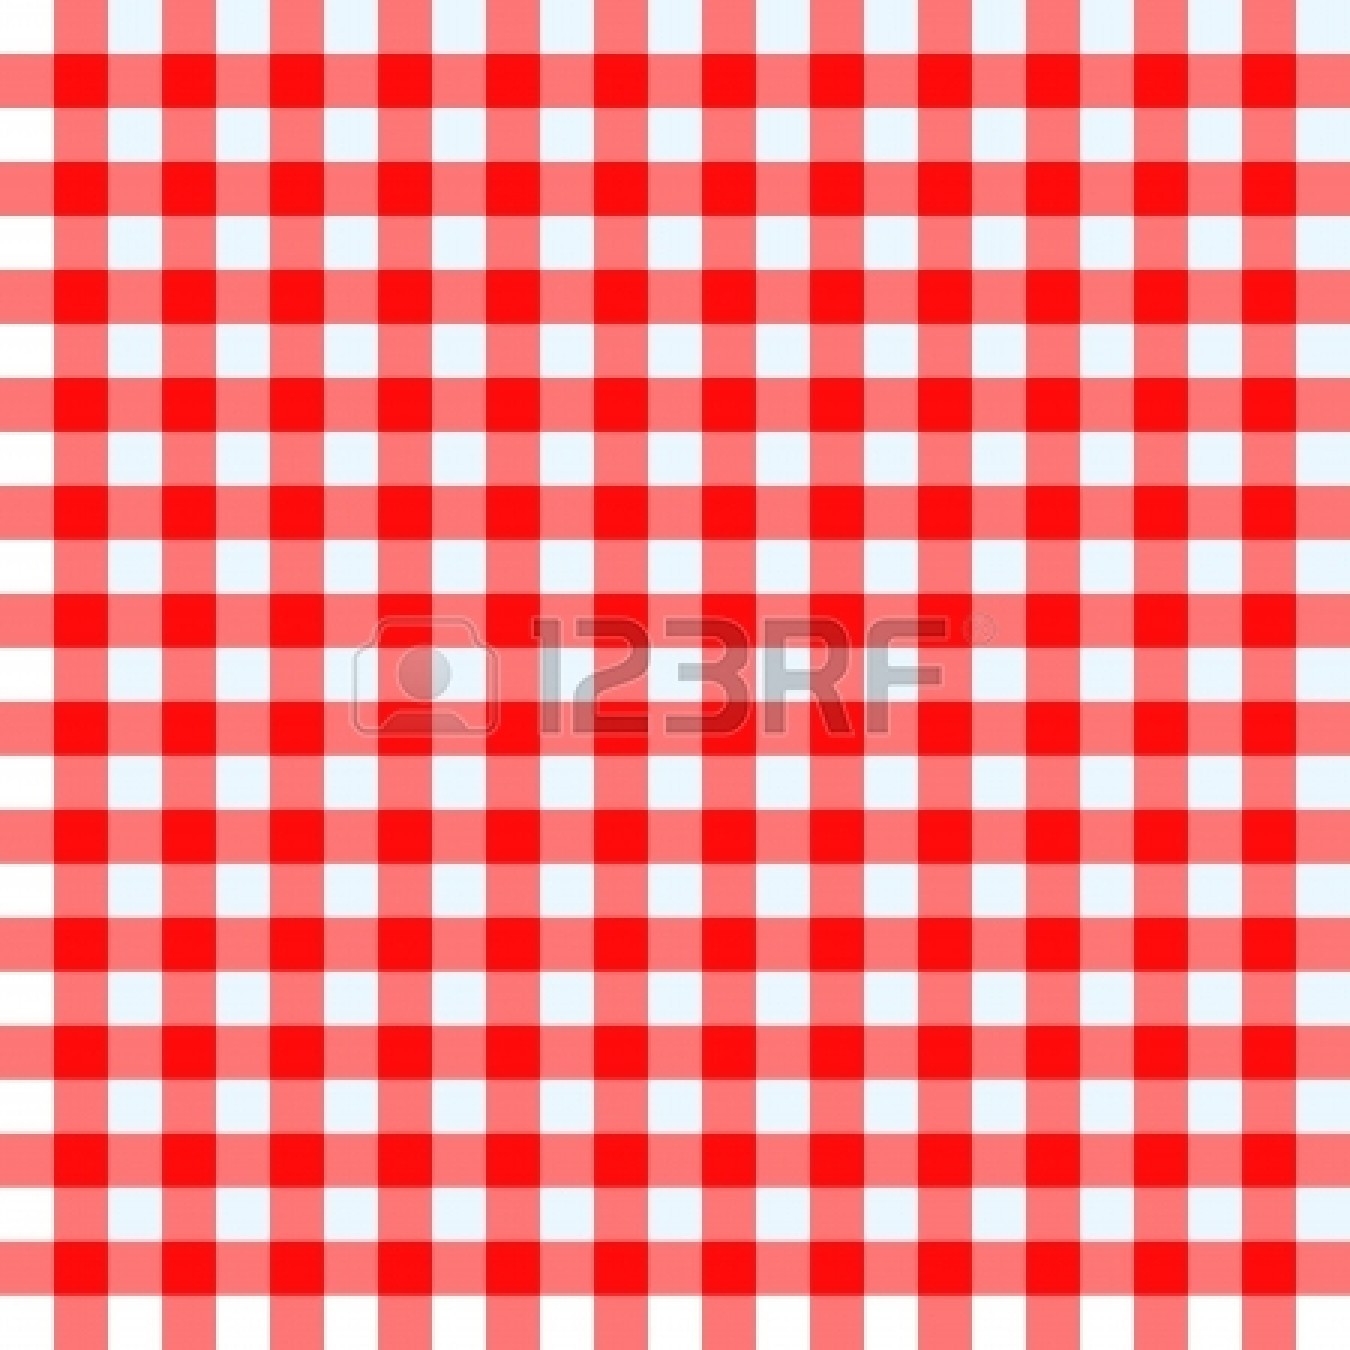 Pattern clipart tablecloth Picnic Tablecloth Images With Clipart